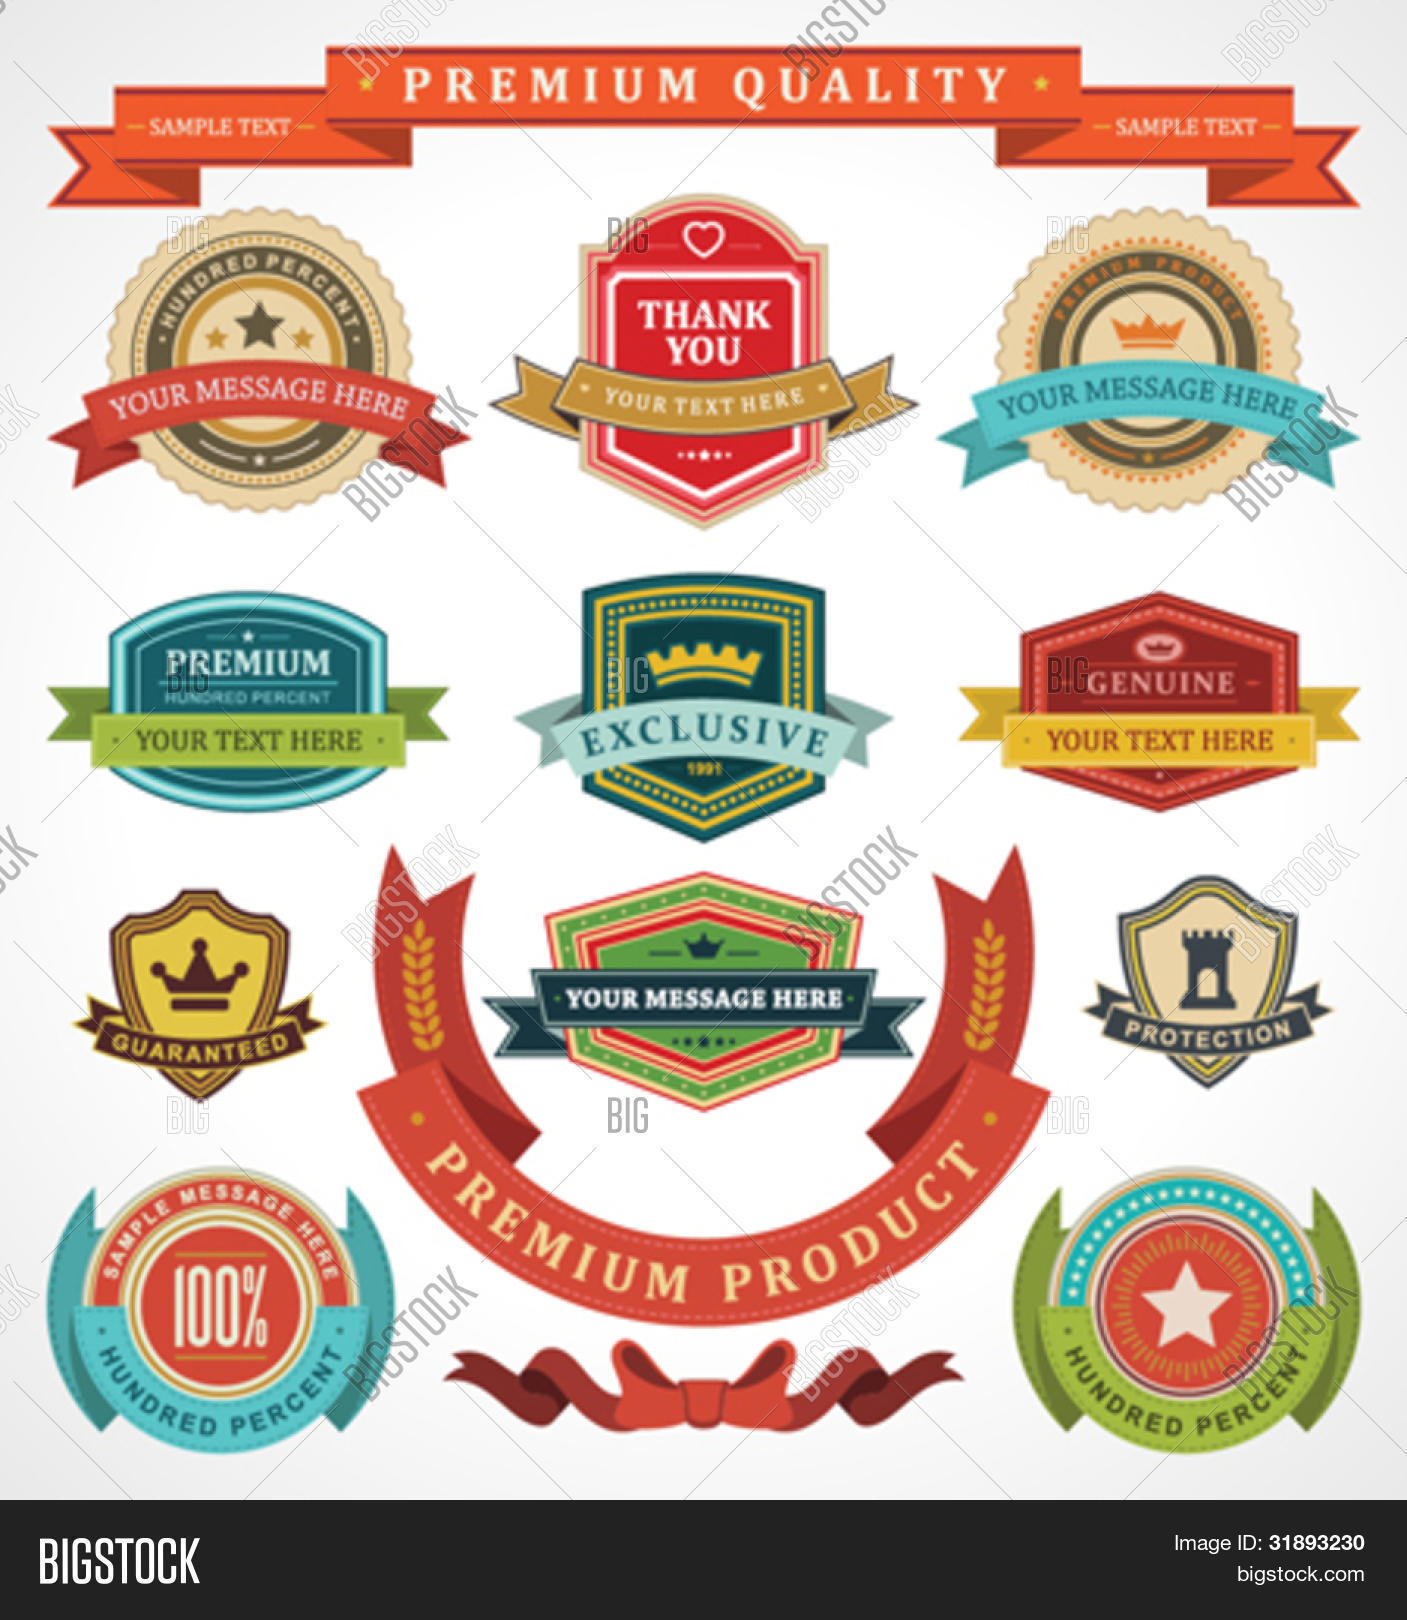 Vintage Labels Ribbon Vector Photo Free Trial Bigstock